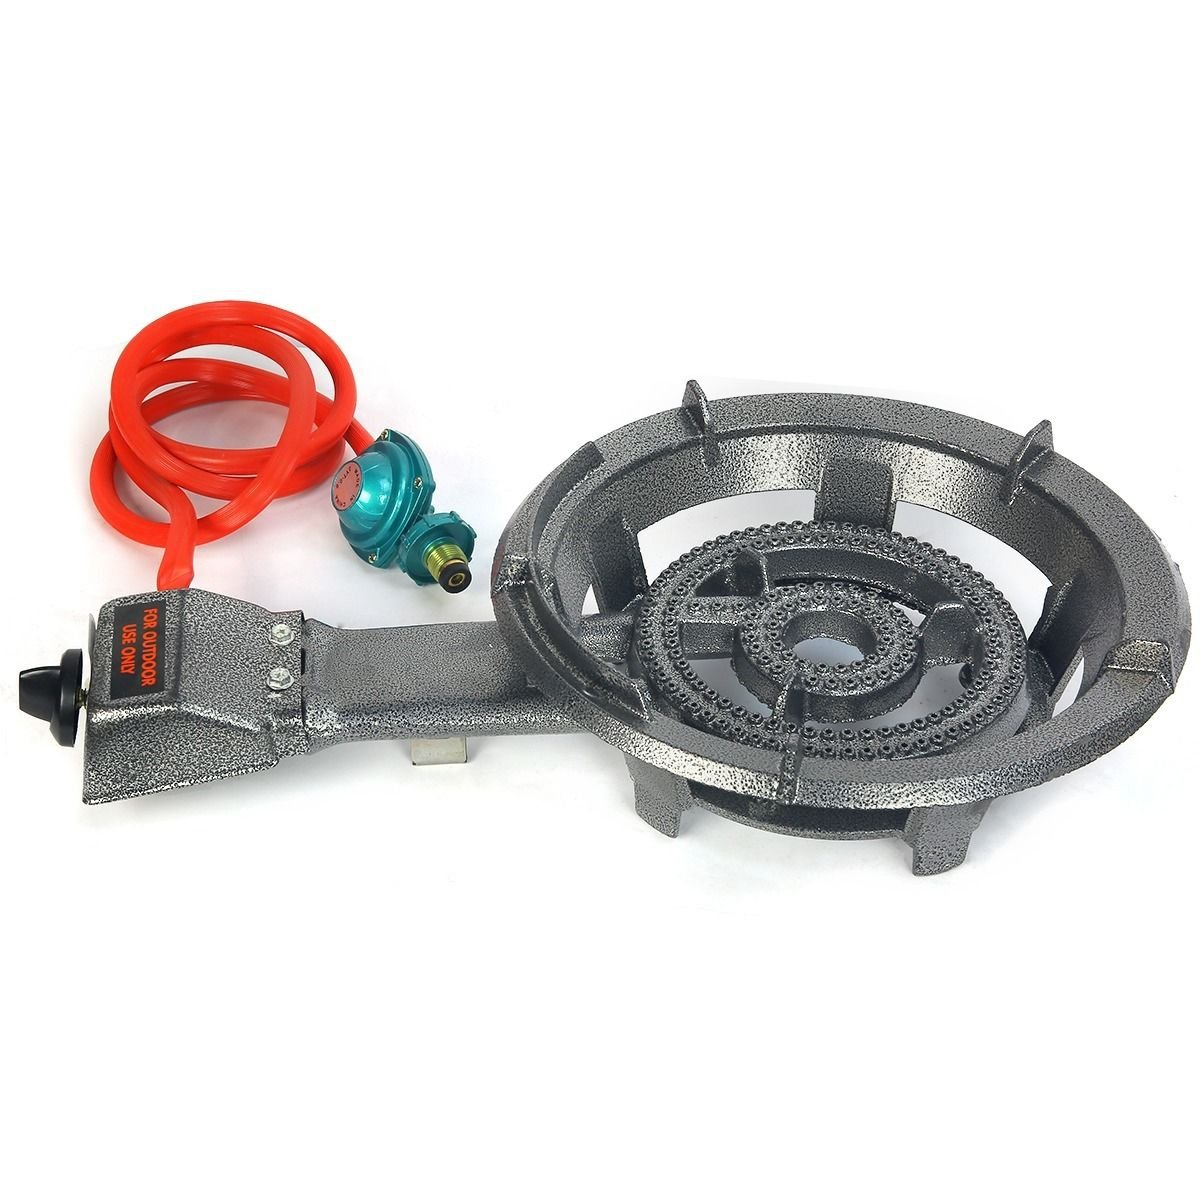 9TRADING Single Gas Propane Burner Stove Outdoor Camping Tailgate BBQ Cook, Free Tax,Delivered Within 10 Days